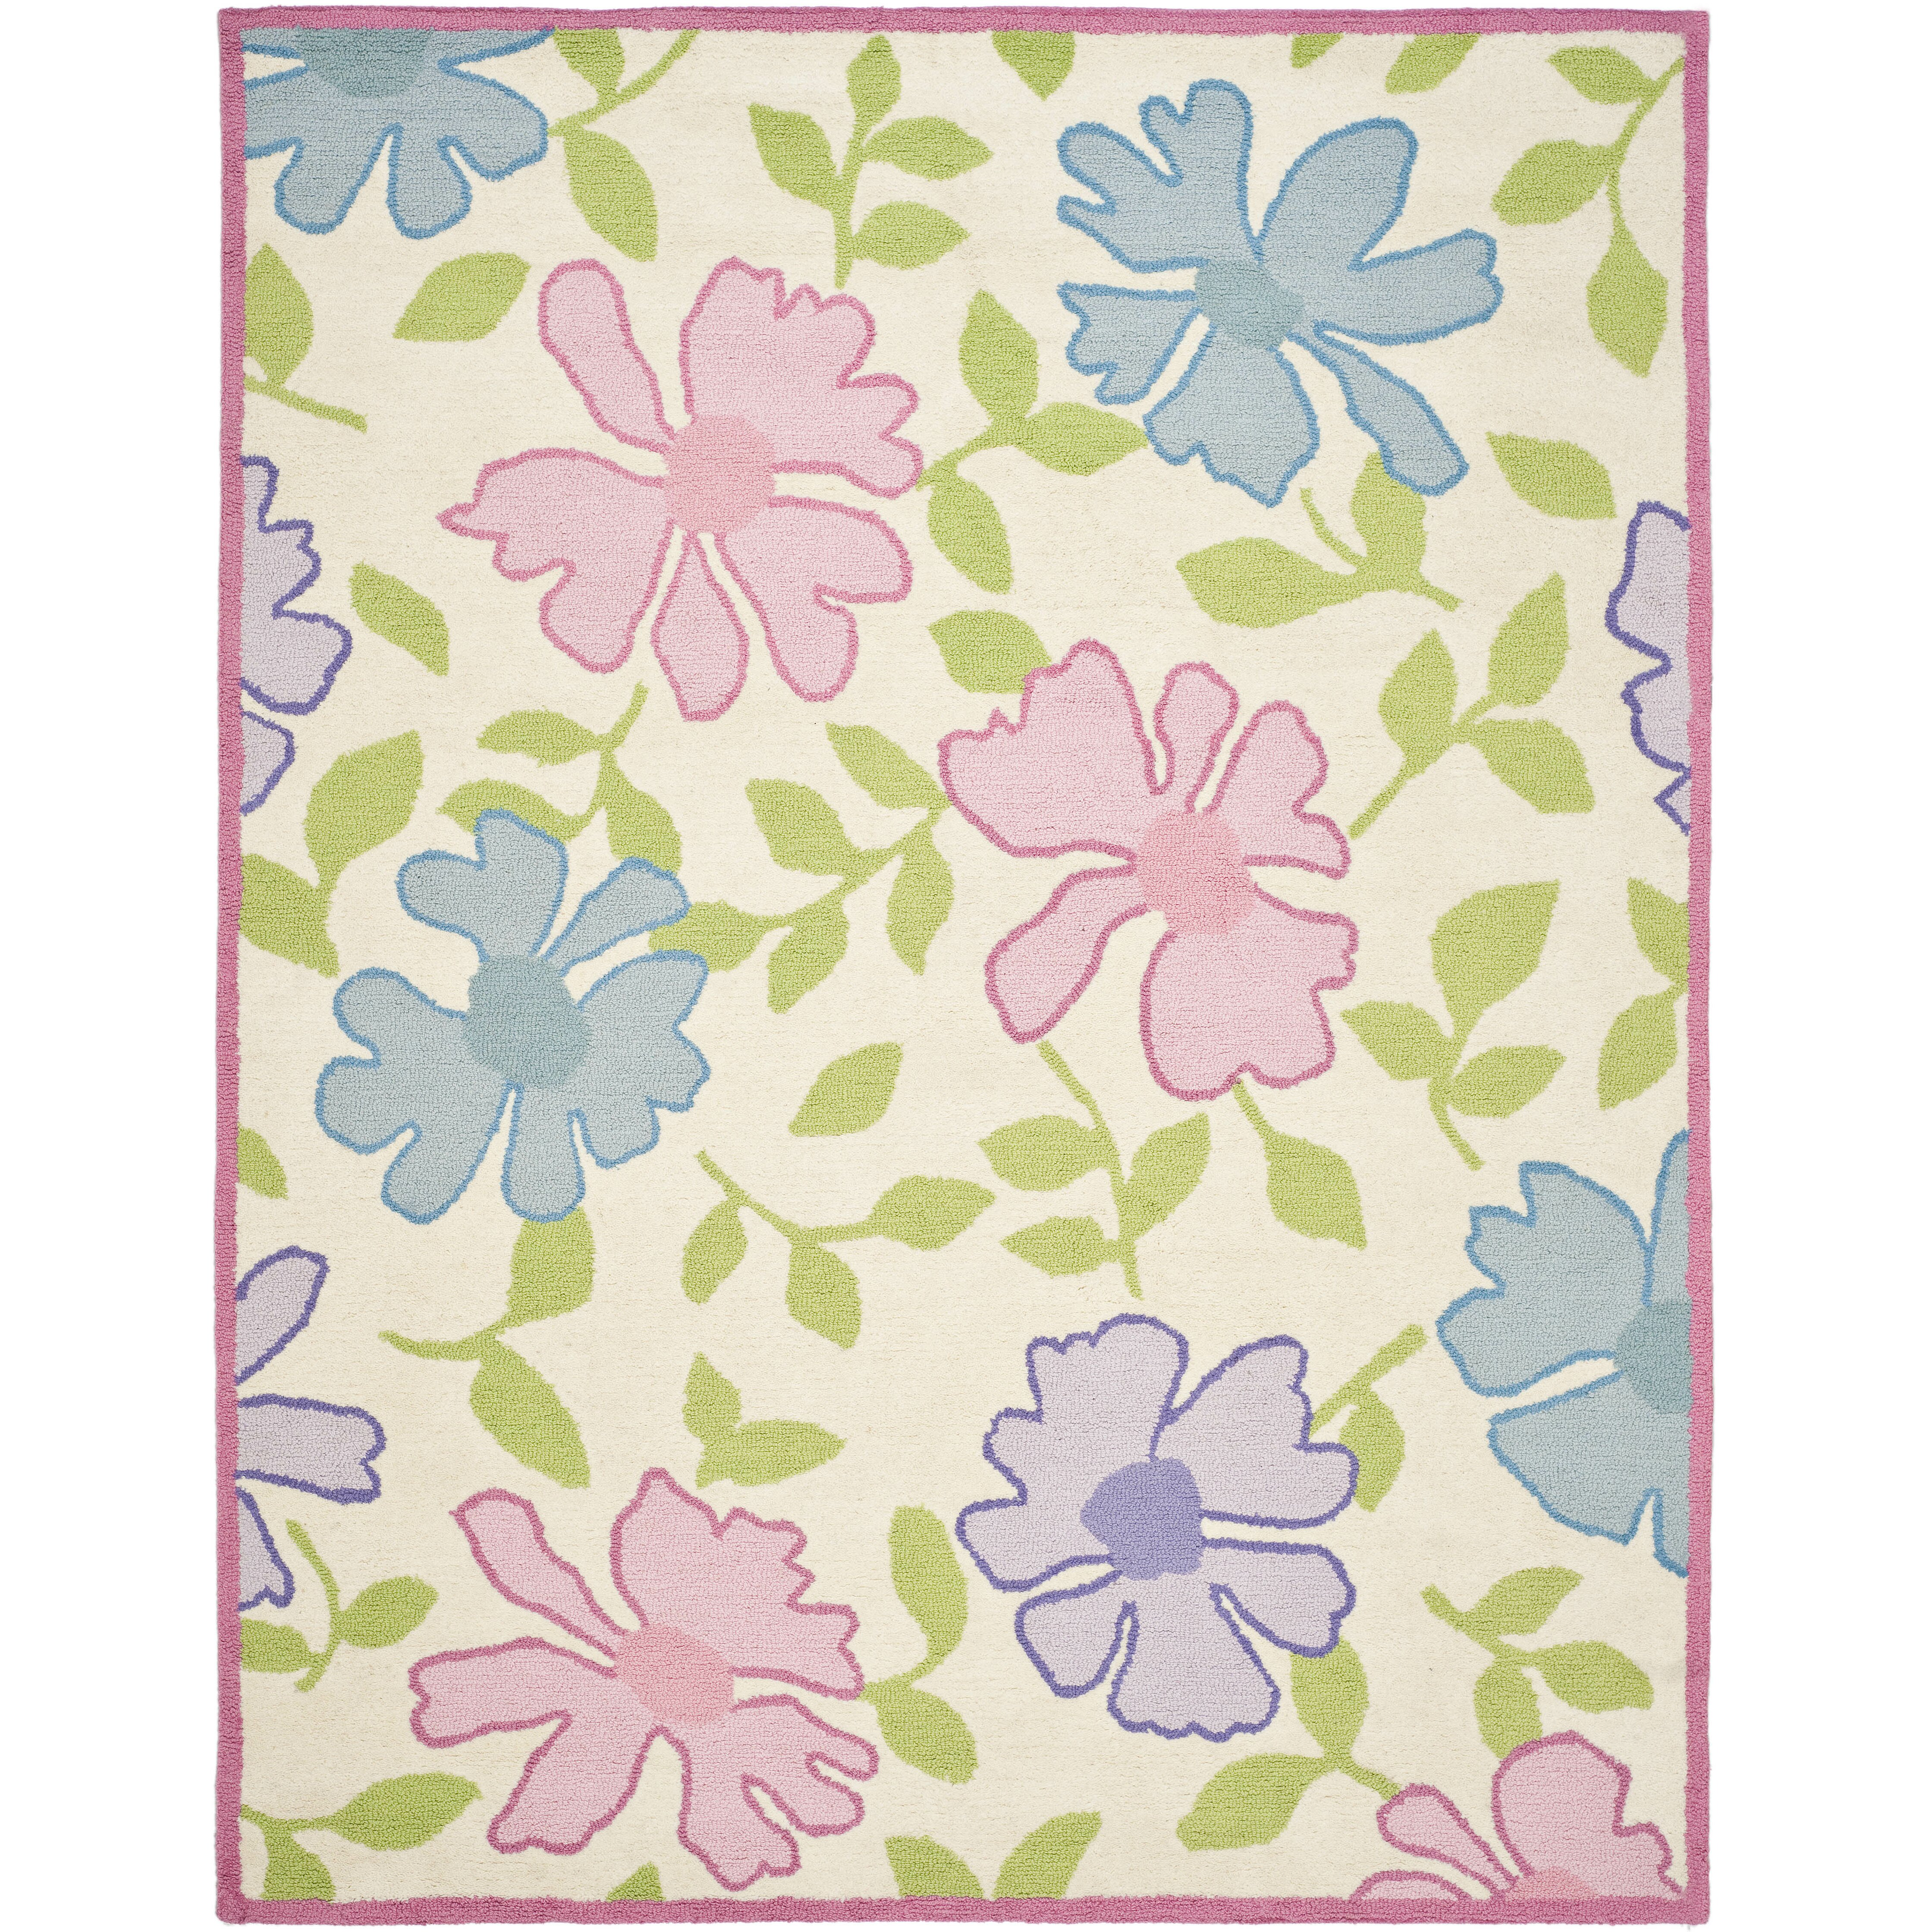 safavieh kids pink flower area rug cheerful home office rug wayfair safavieh